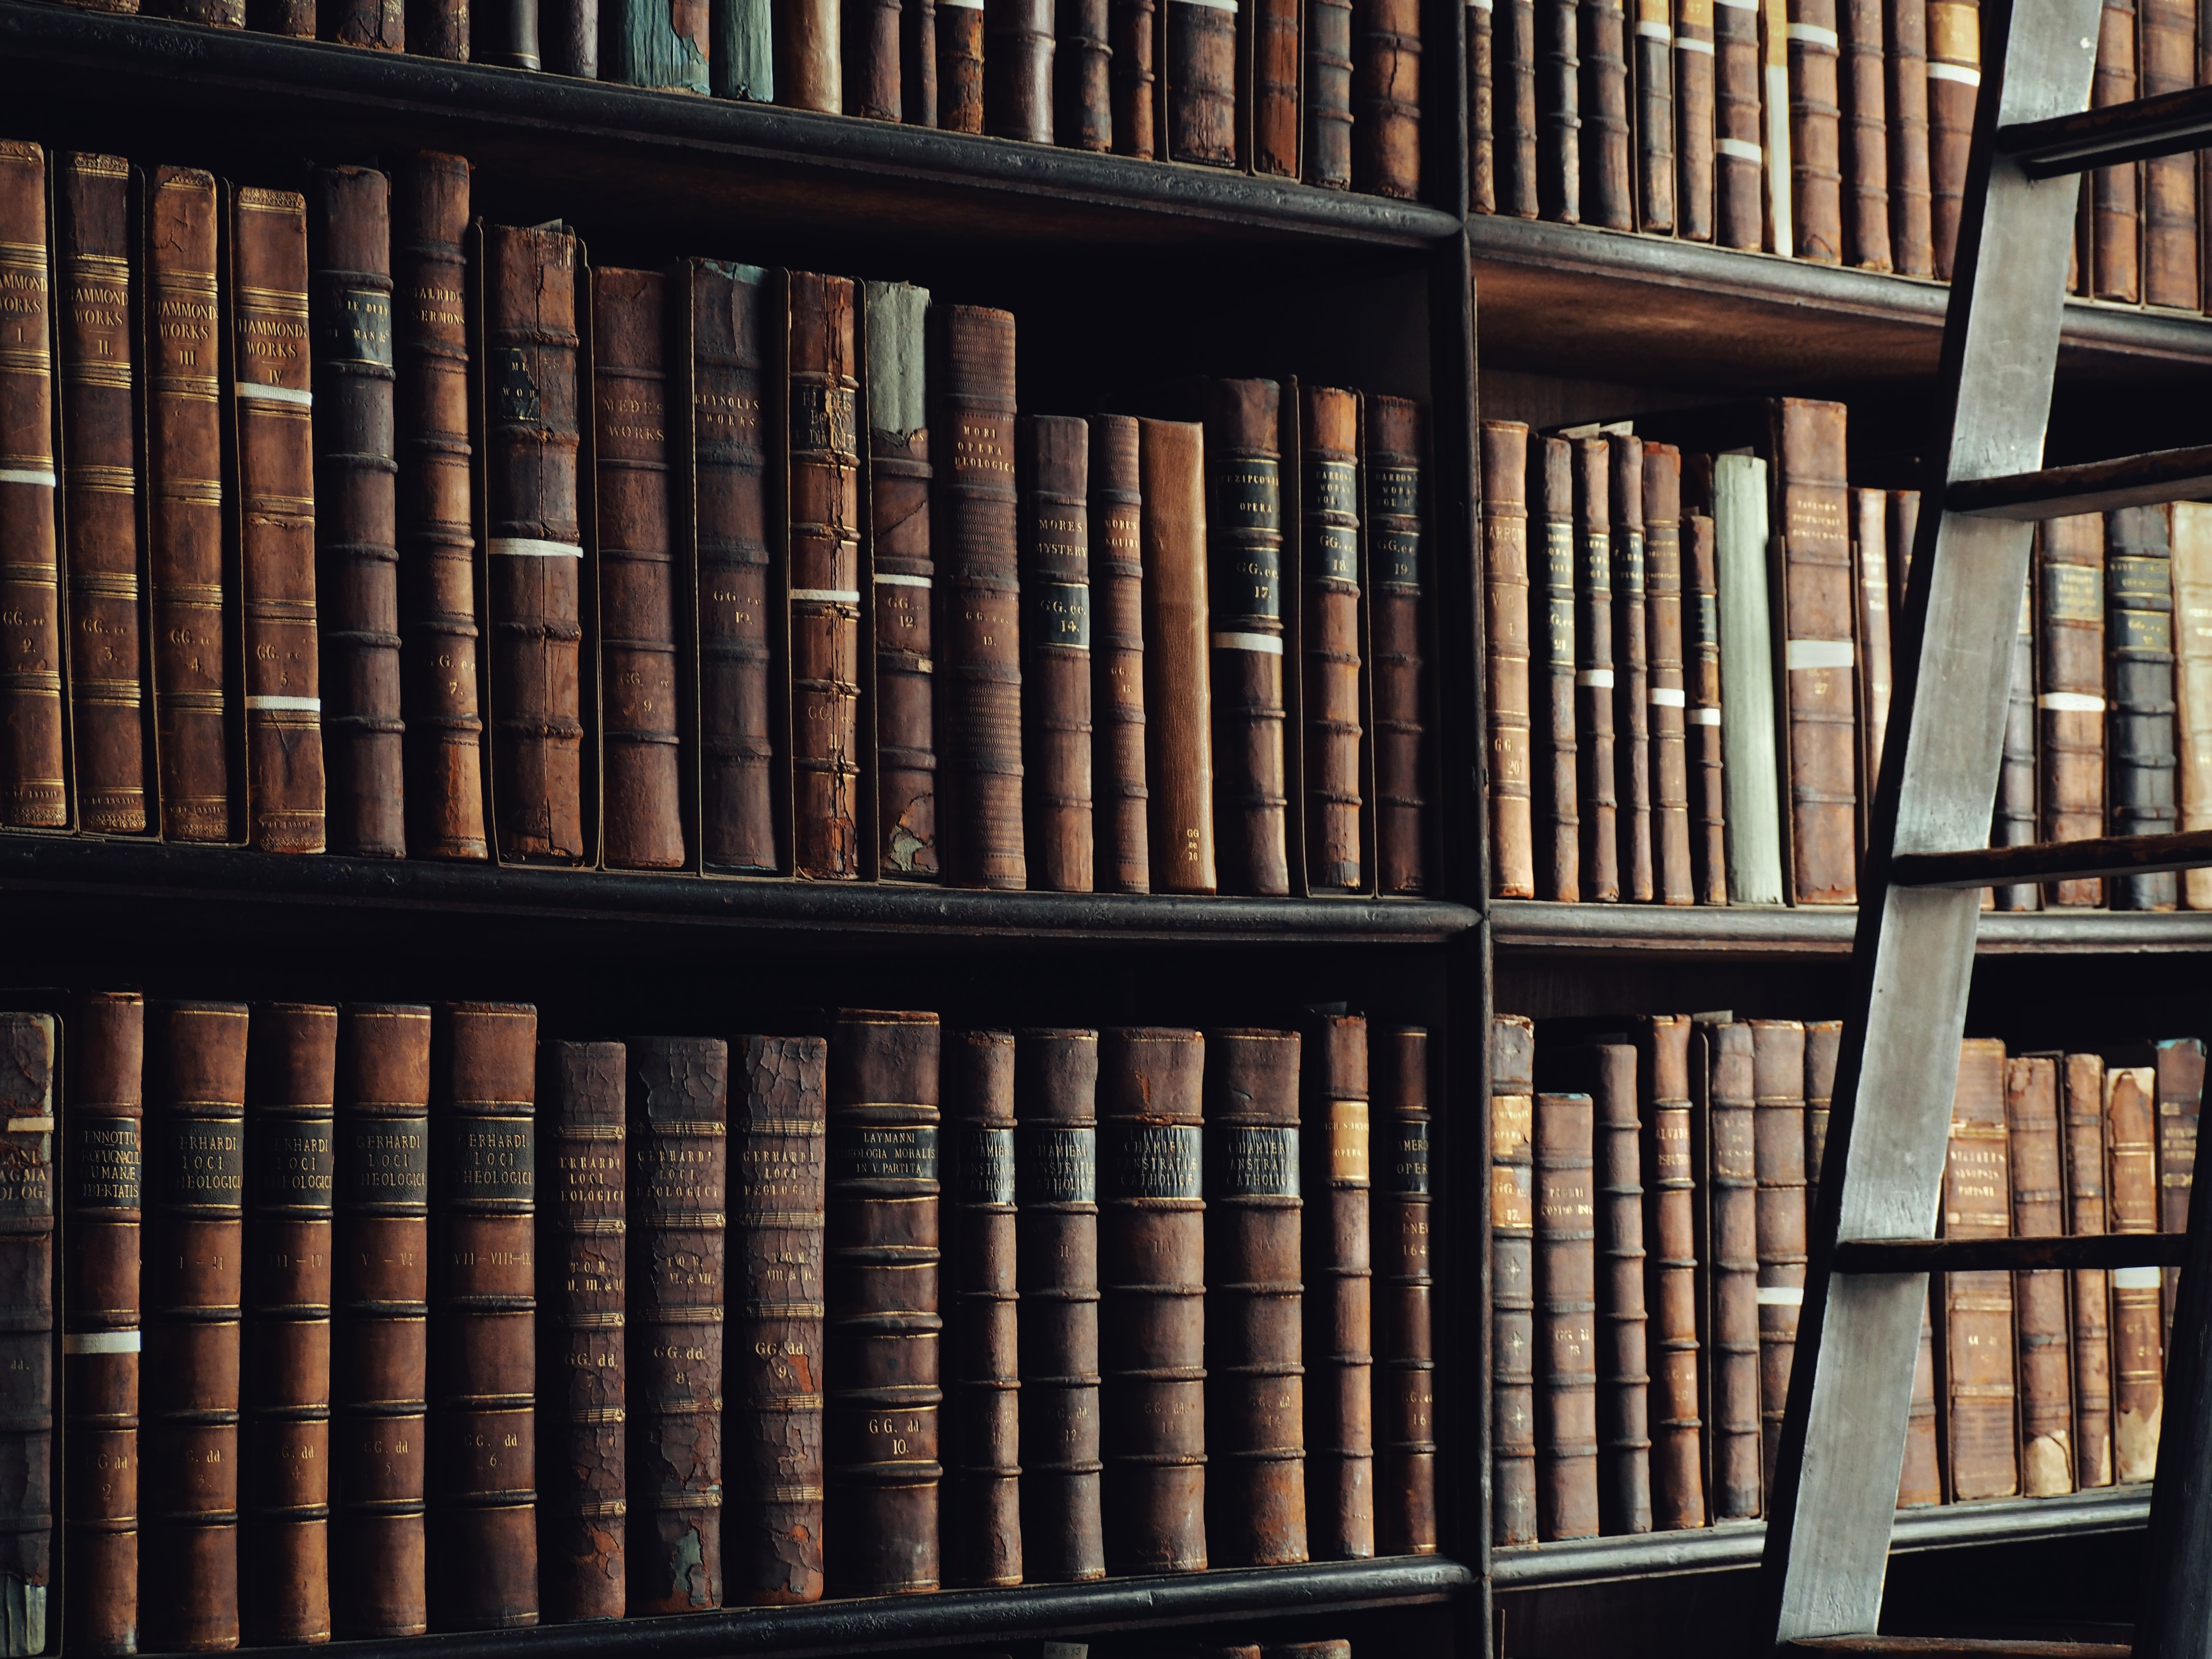 brown book lot on bookshelves inside the library